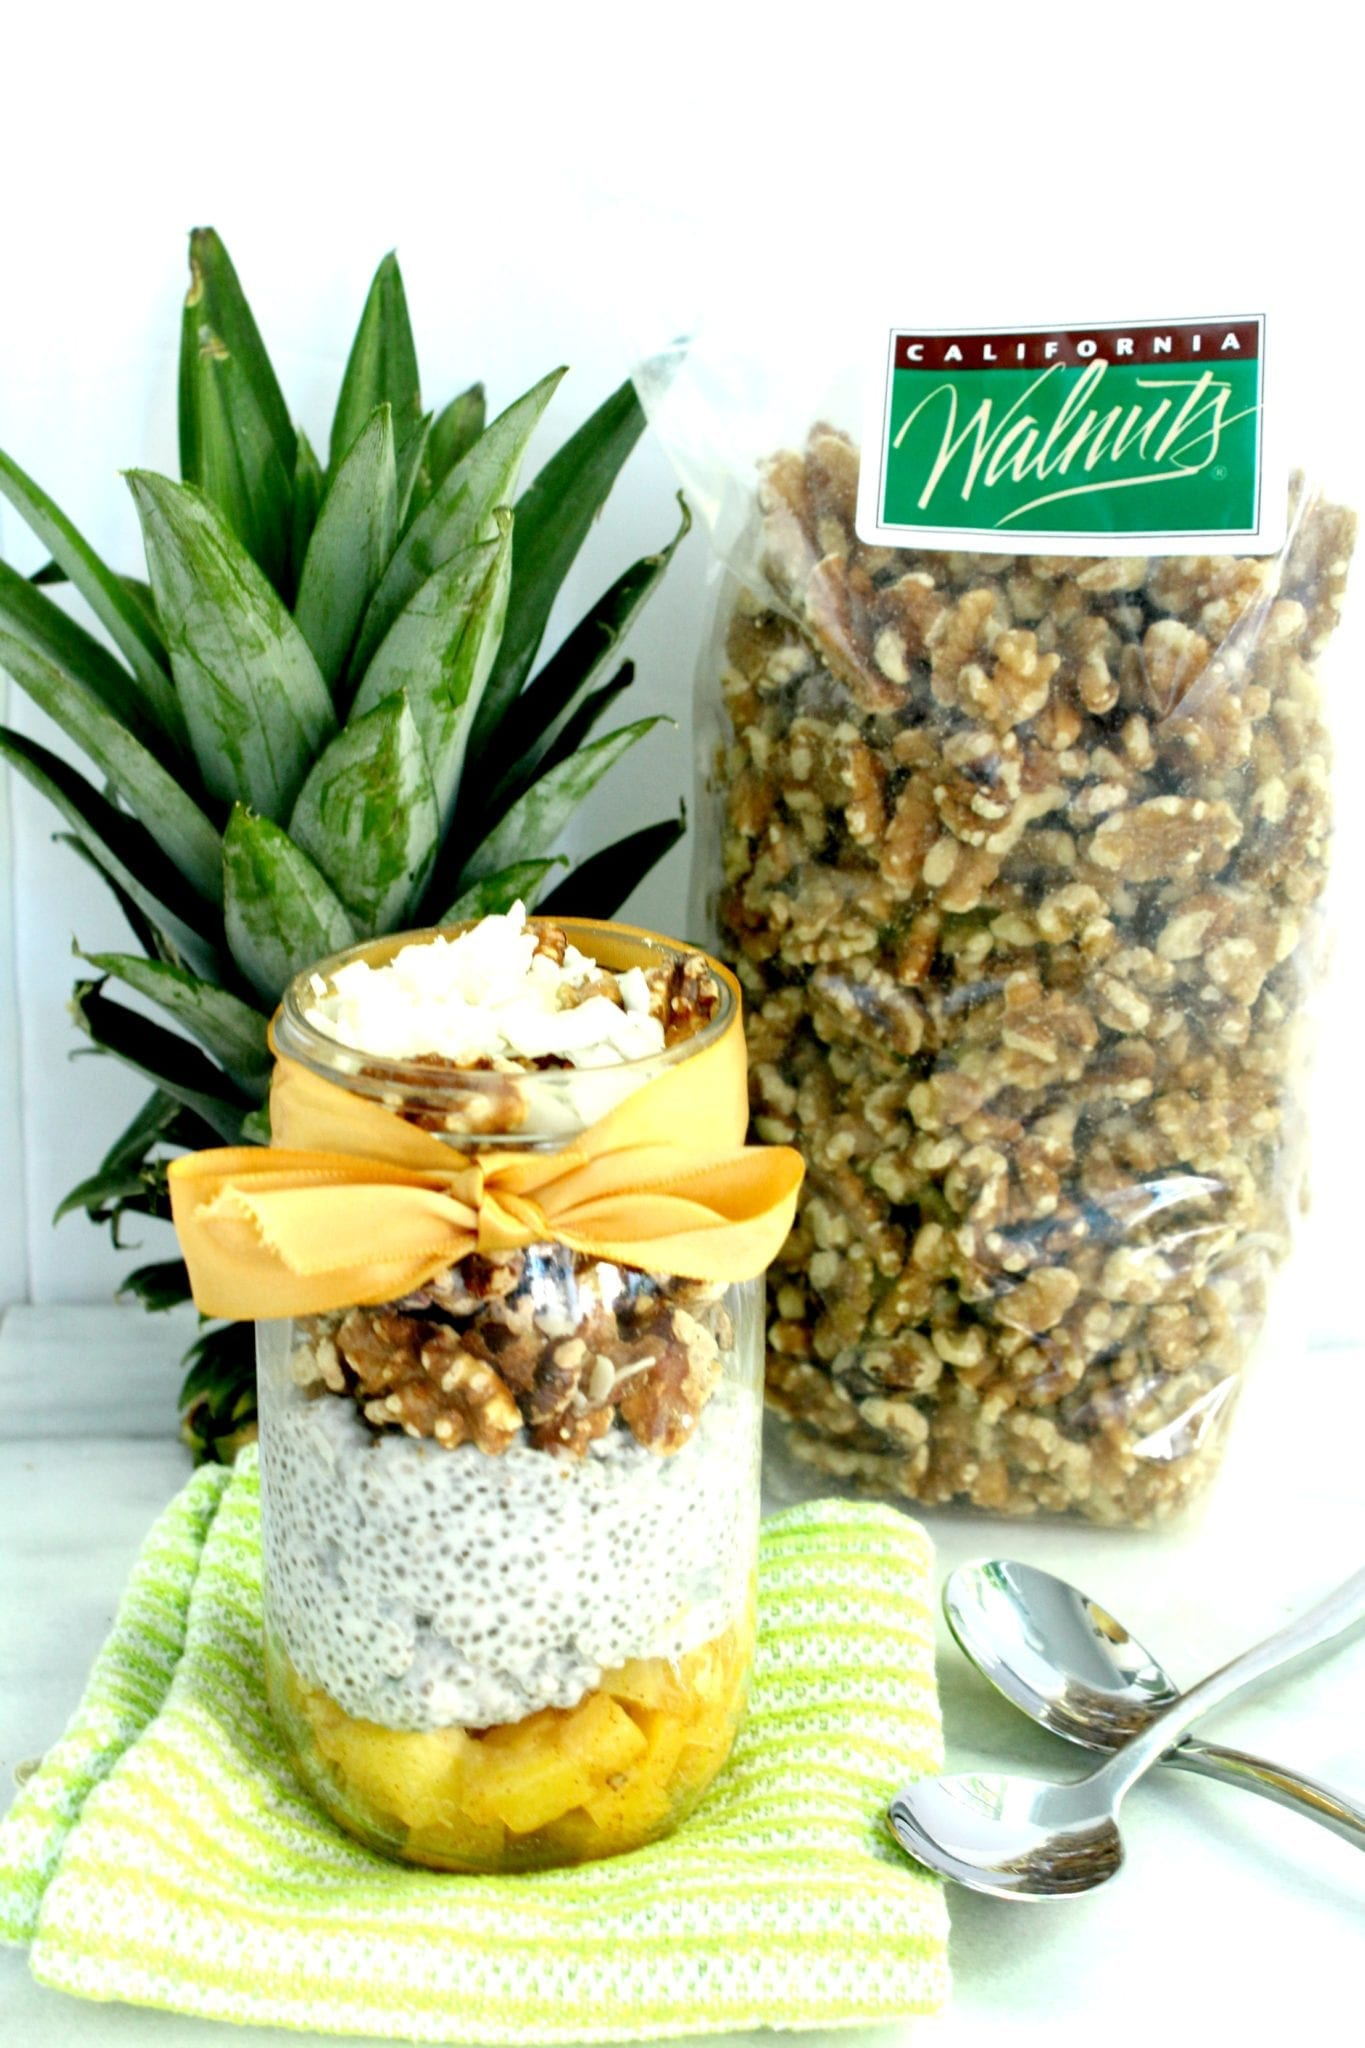 Chia Walnut Pineapple Parfait 4